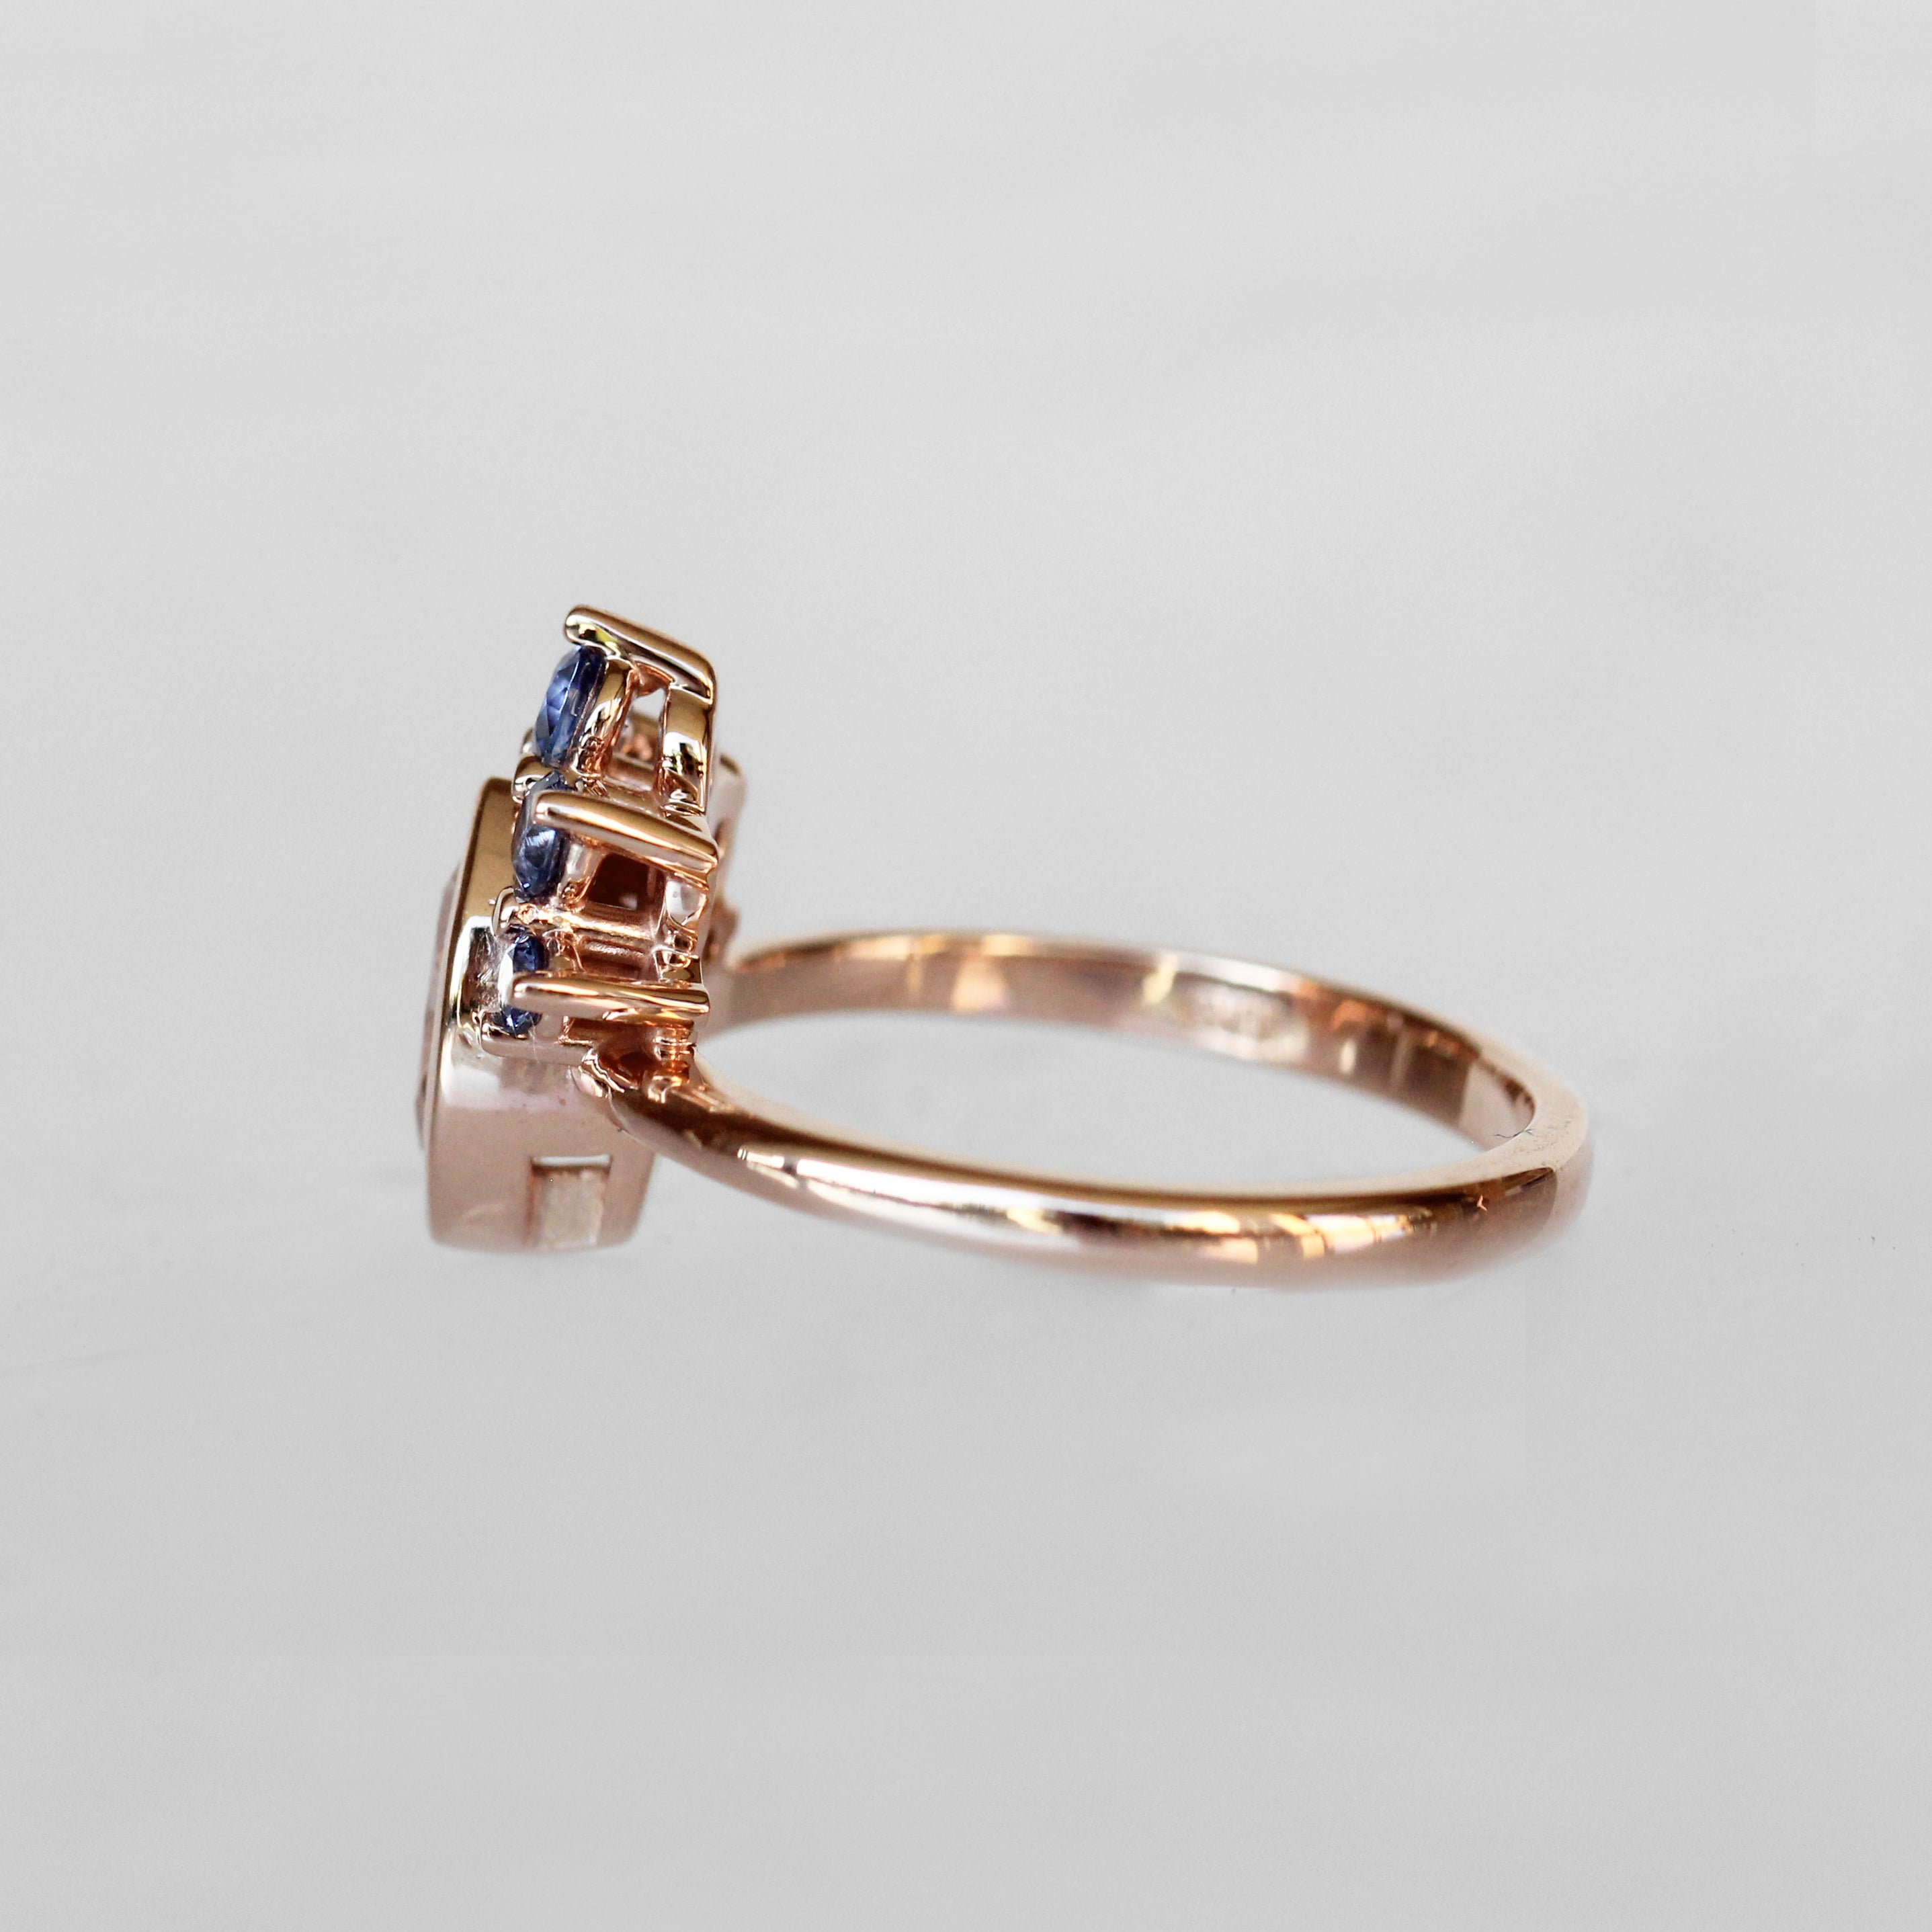 Ashlyn Ring with White Sapphire and Ceylon Blue Sapphires in 14k Rose Gold - Celestial Diamonds ® by Midwinter Co.